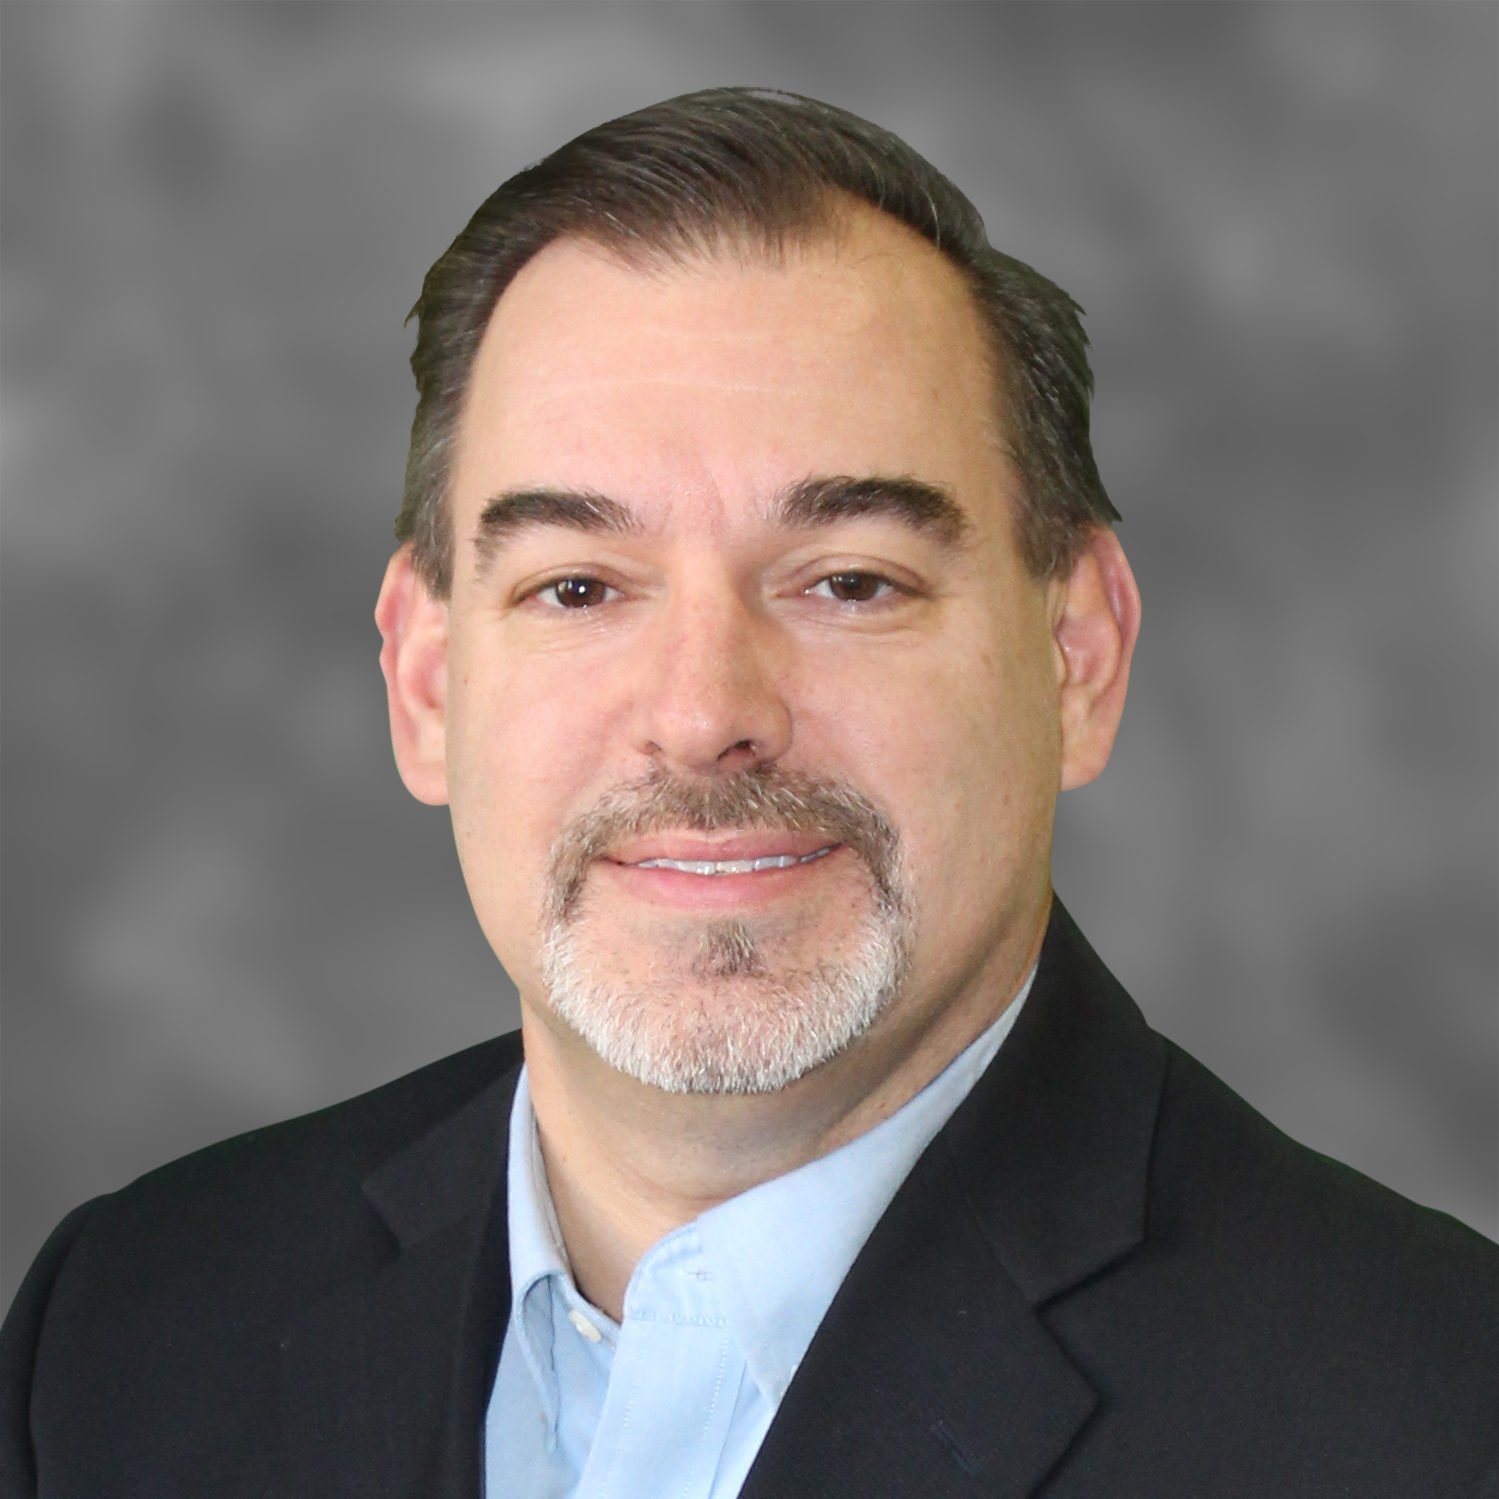 Todd White, Regional Branch Manager